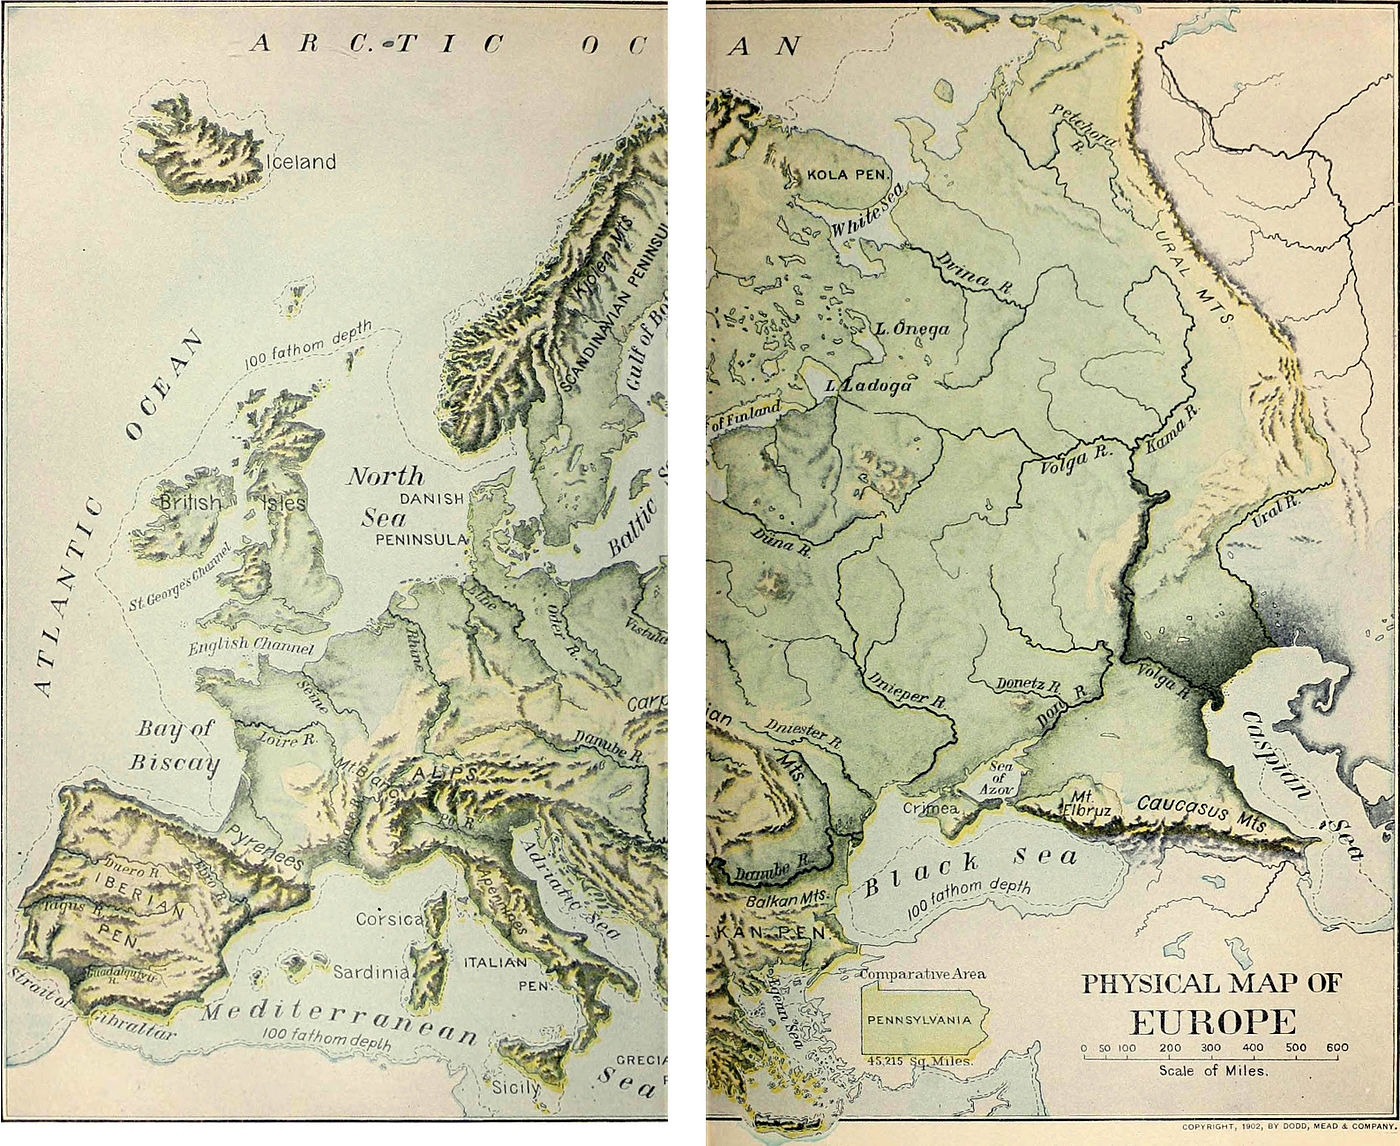 NIE 1905 Europe - Physical Map.jpg